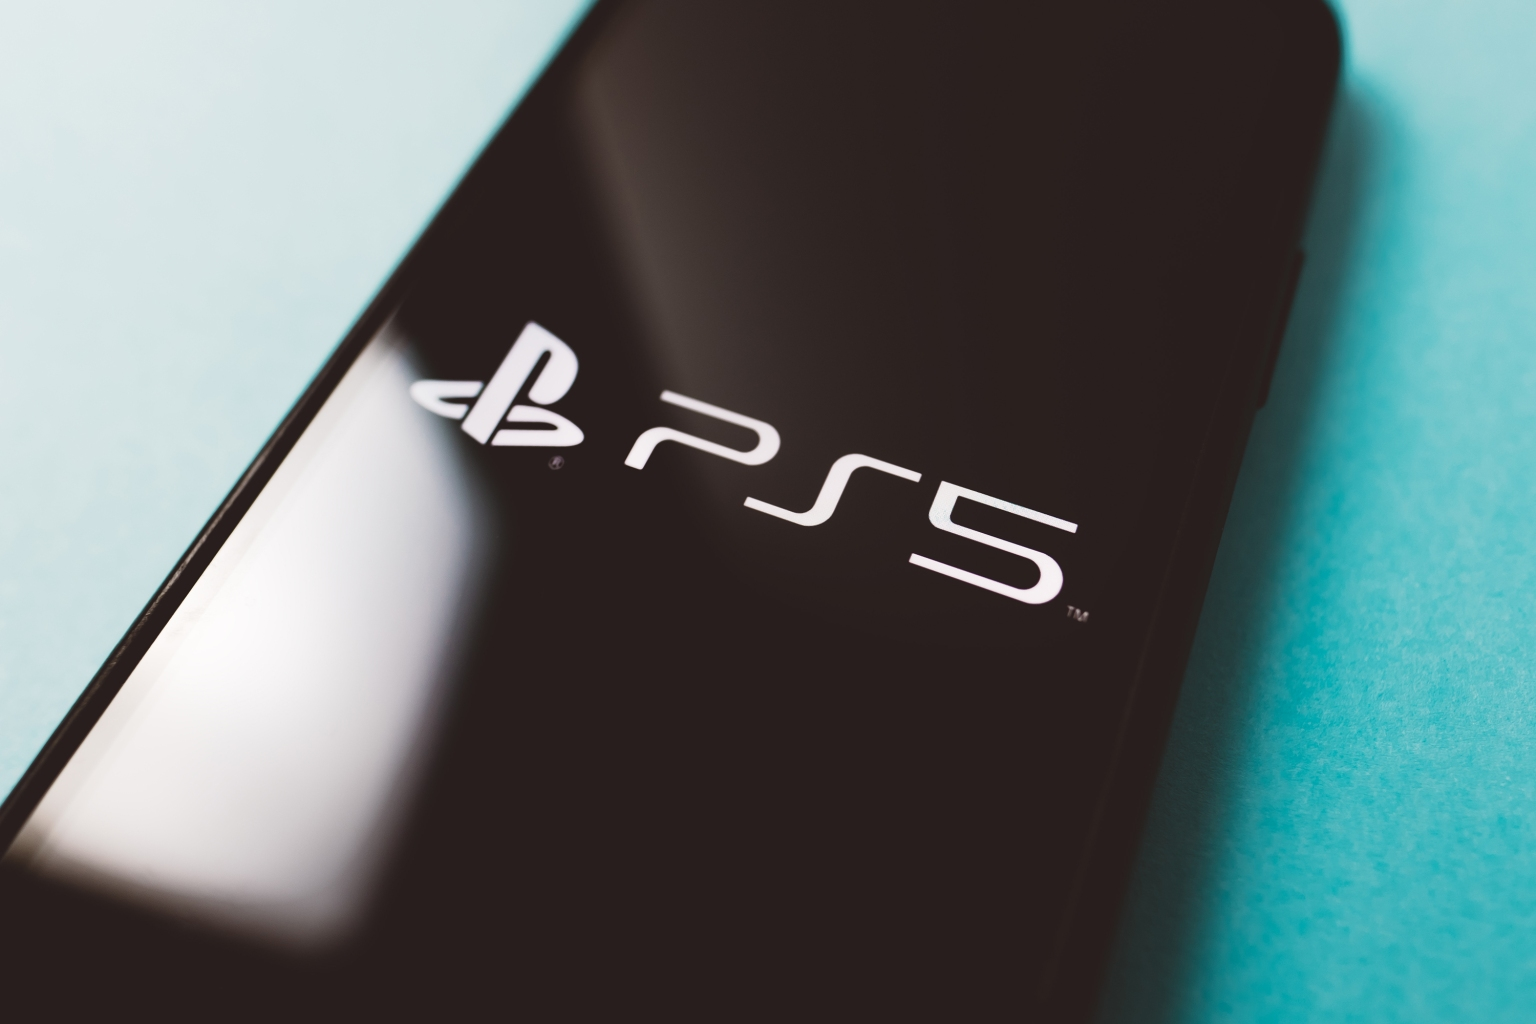 Sony reveals technical specifications of the upcoming PlayStation 5